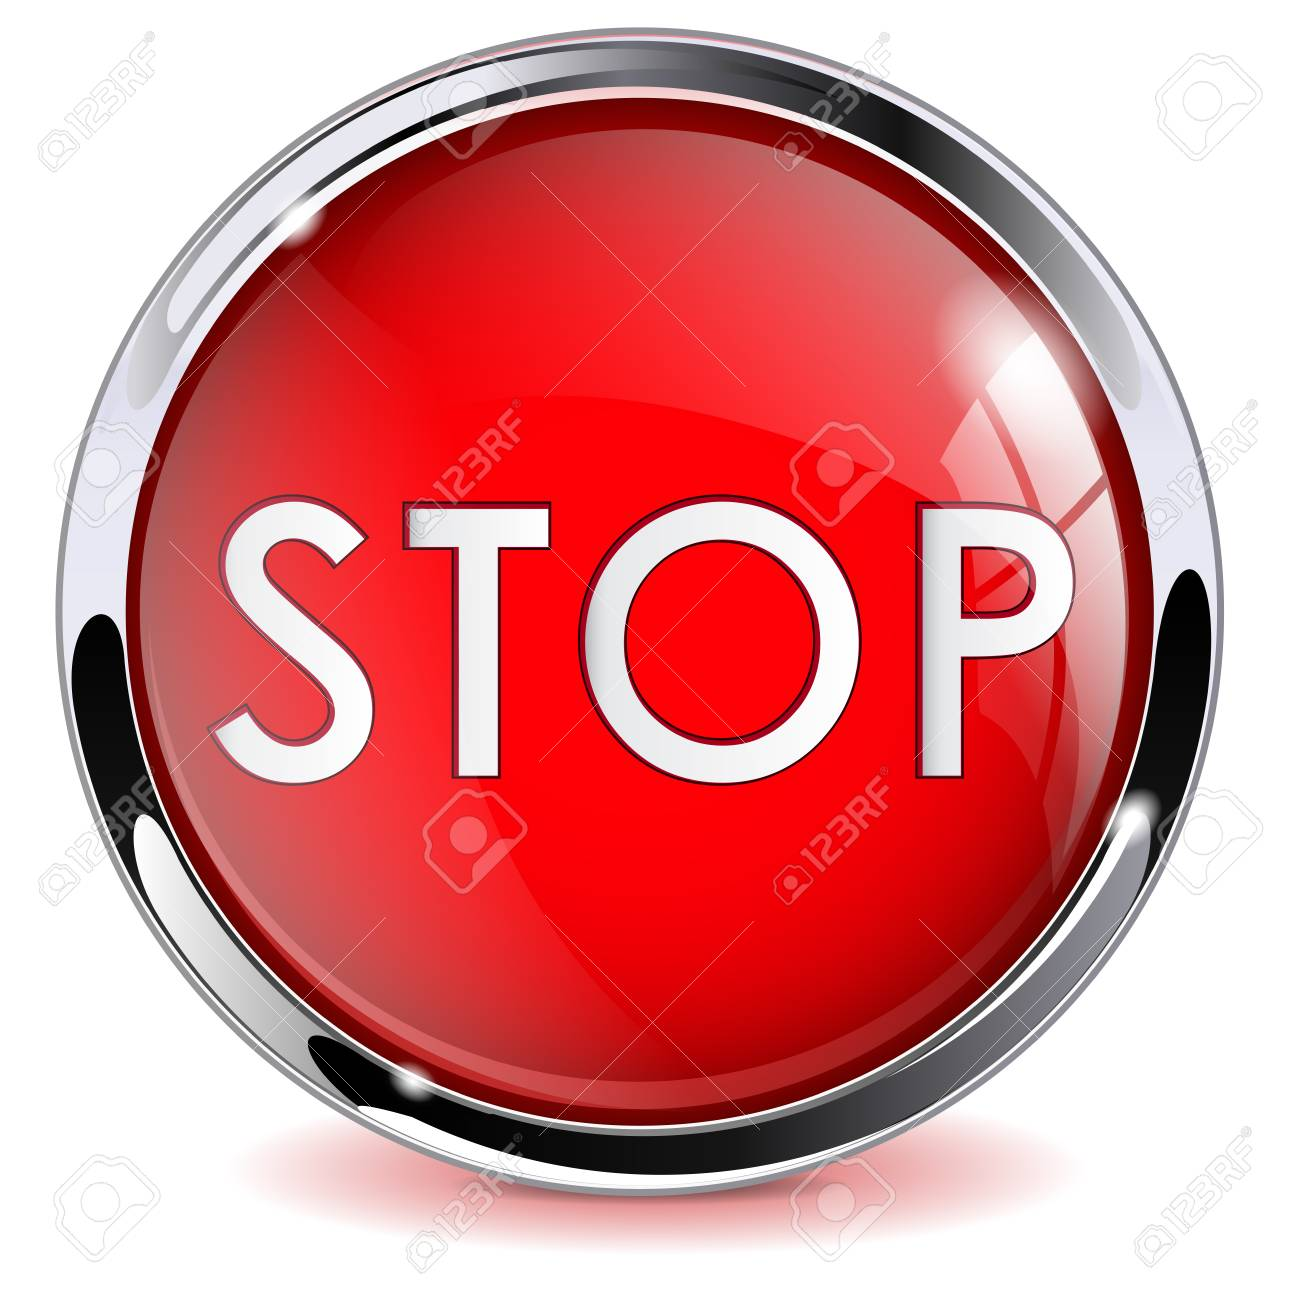 Red STOP button  3d shiny glass icon with metal frame  Vector